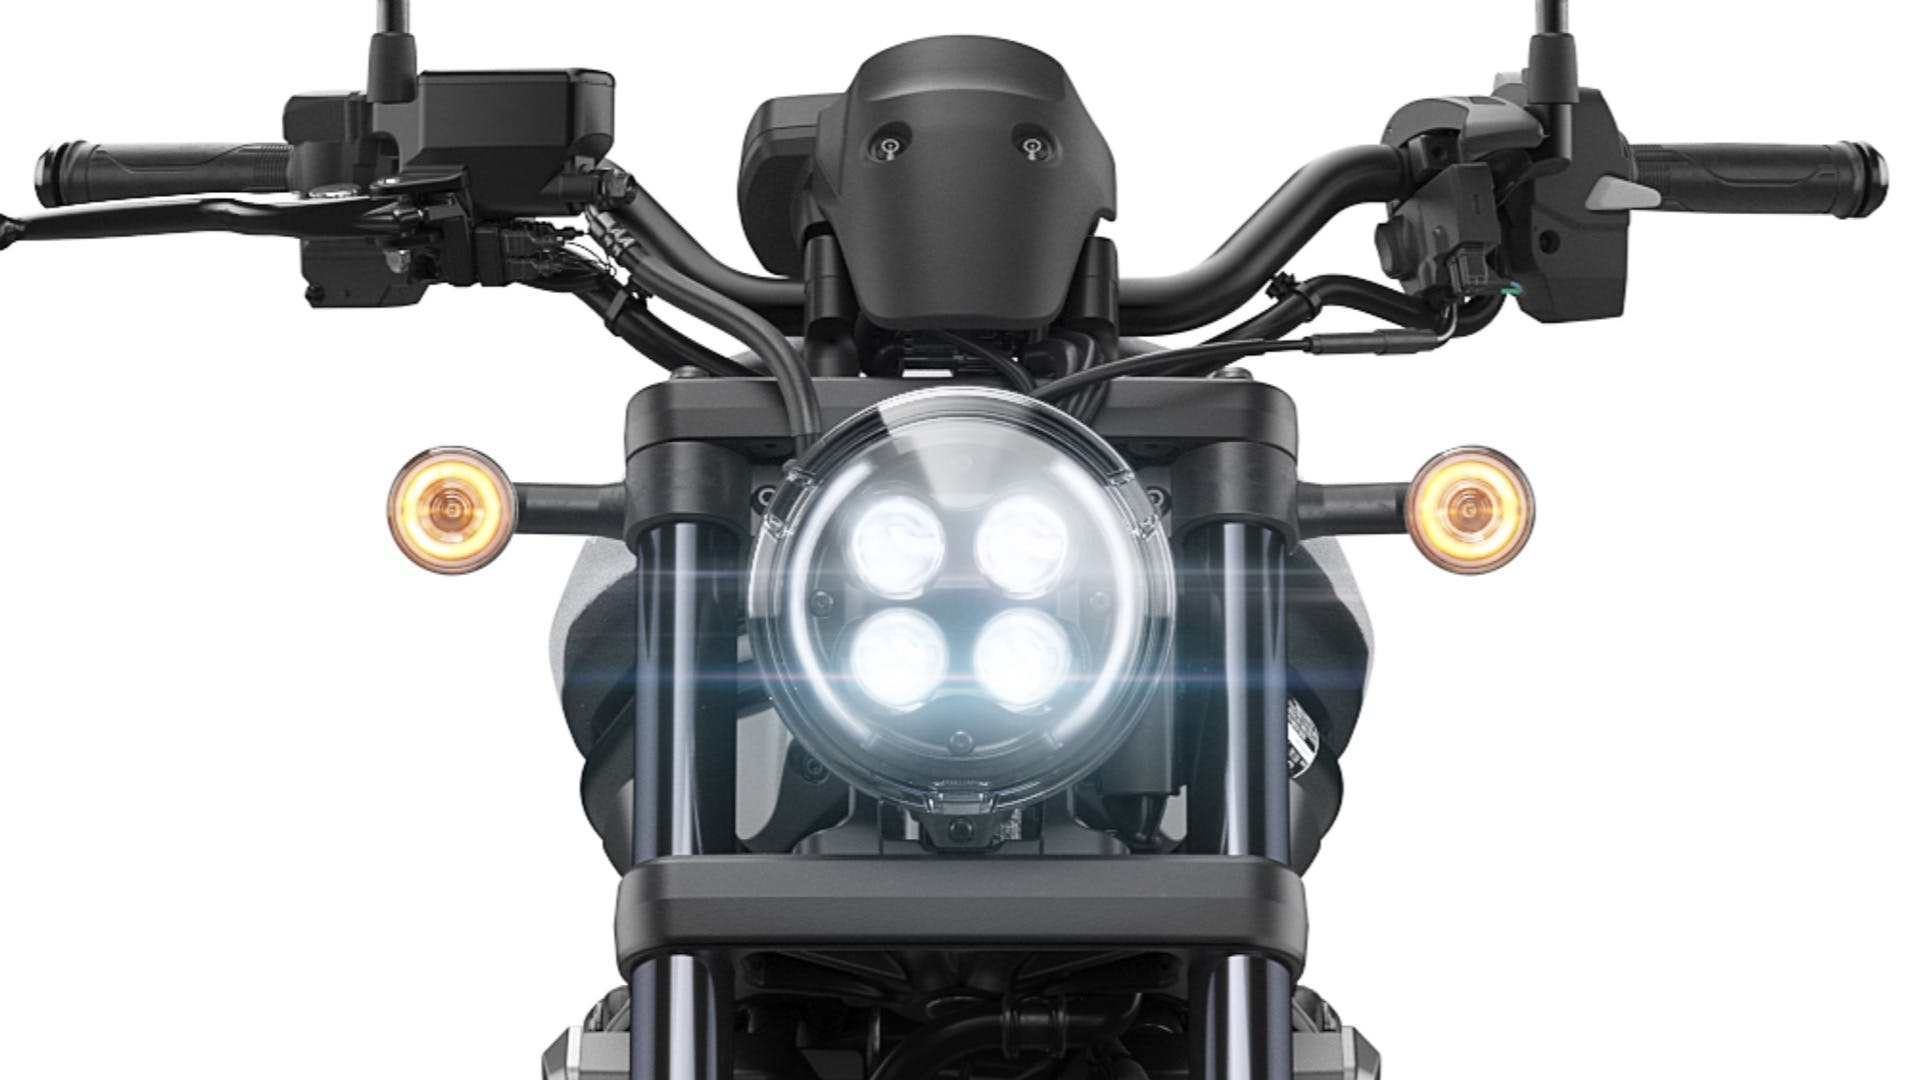 Honda CMX1100 Rebel DCT faro a LED